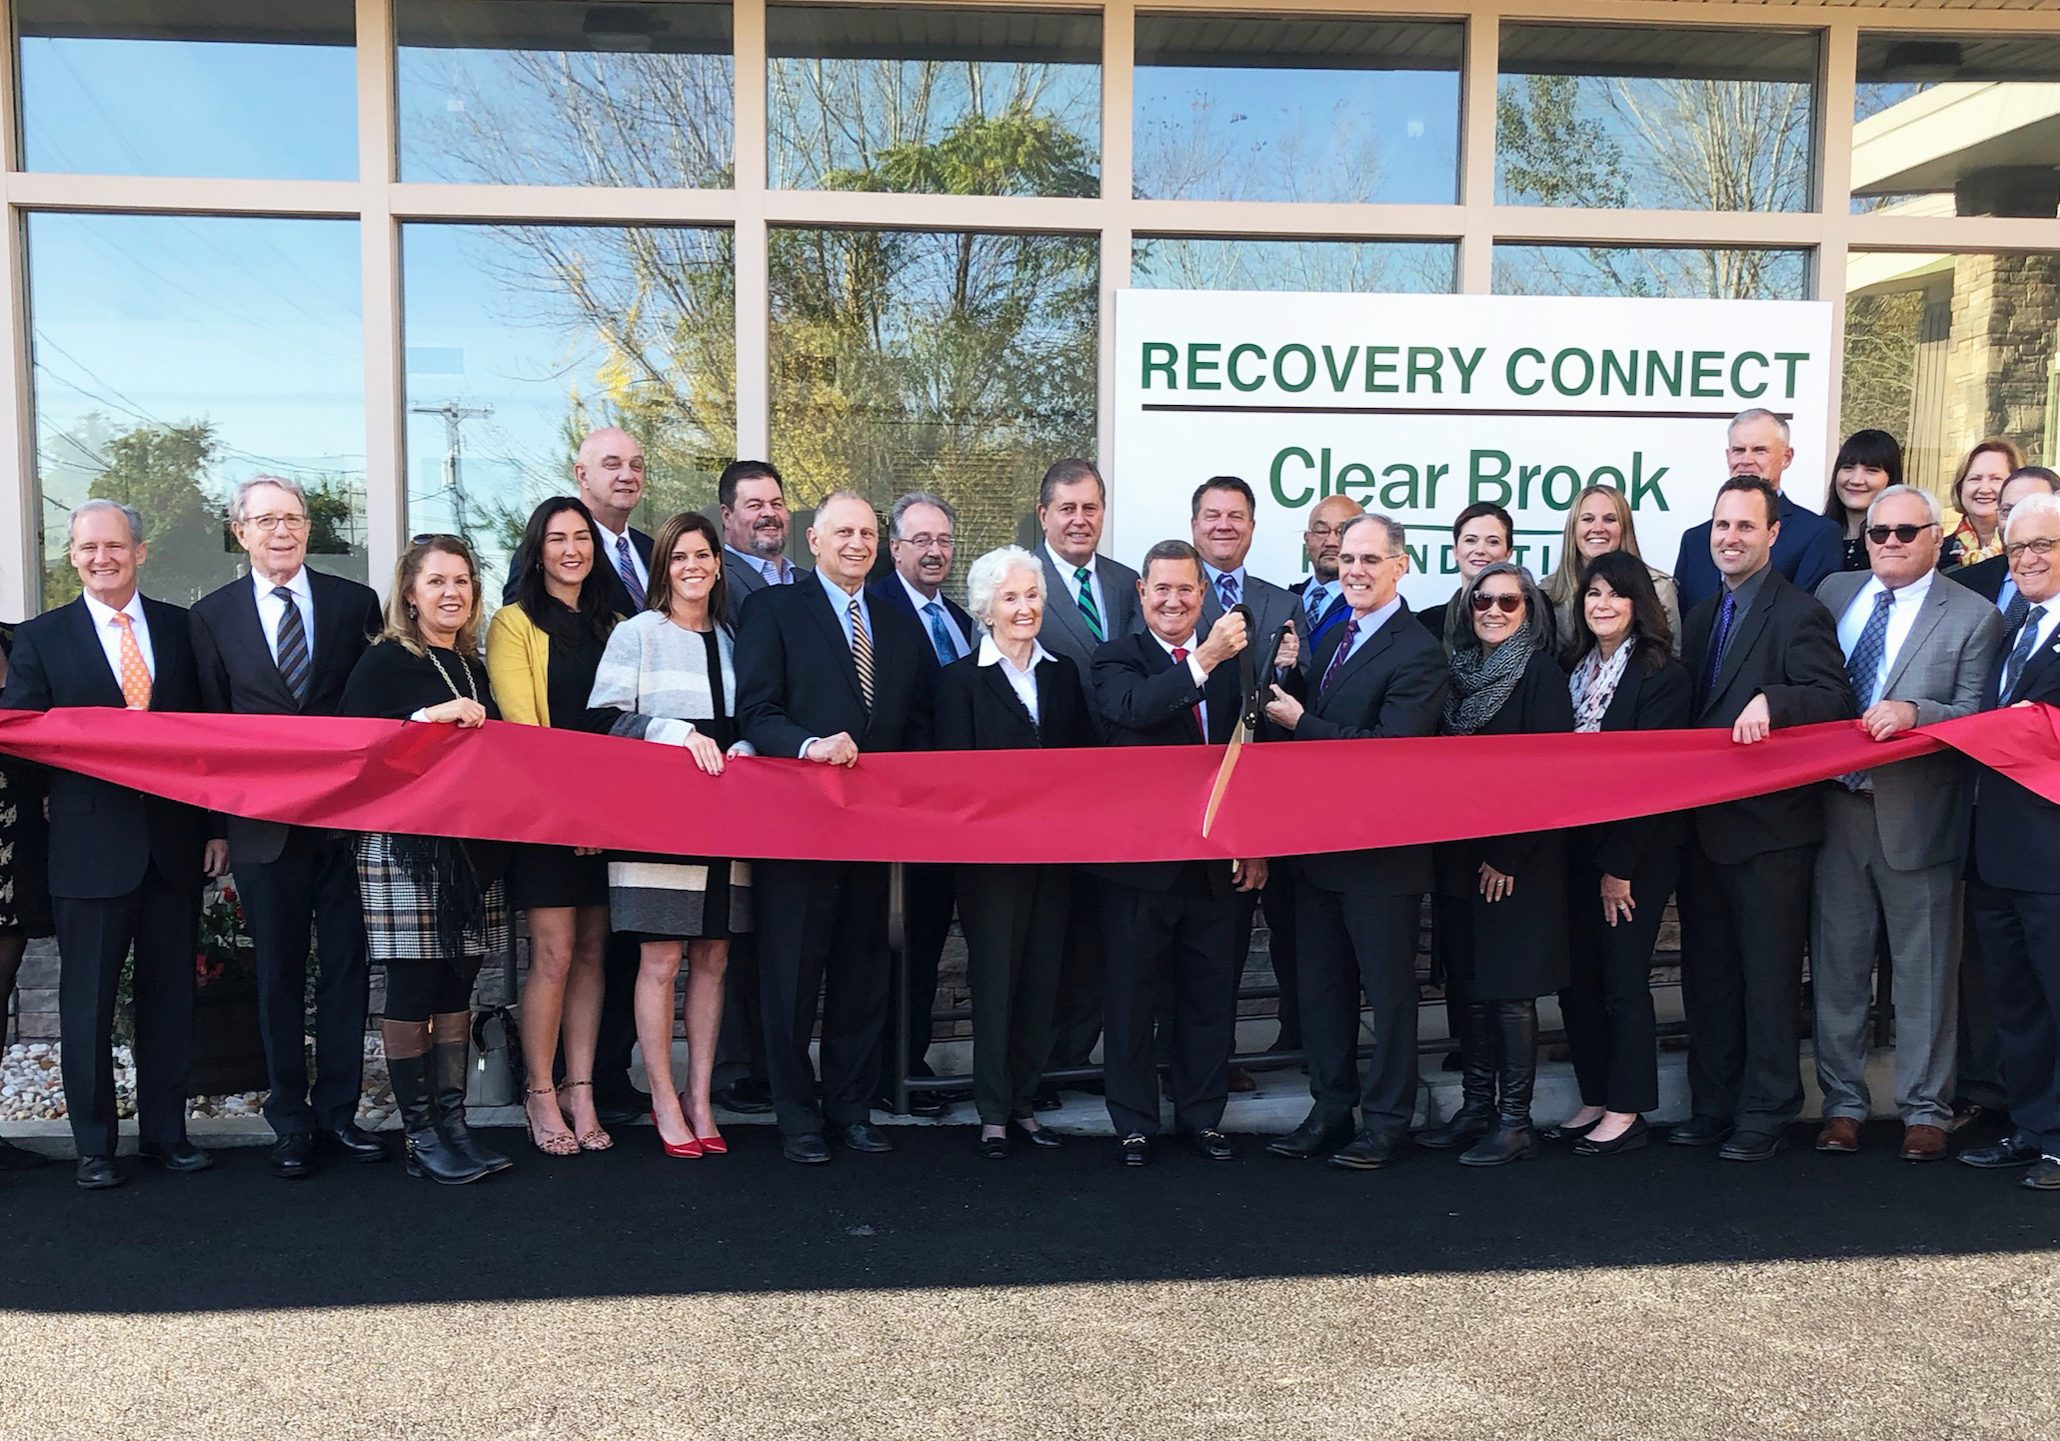 Clear Brook Foundation, Recovery Connect Center, Scranton, Recovery, Treatment, Community